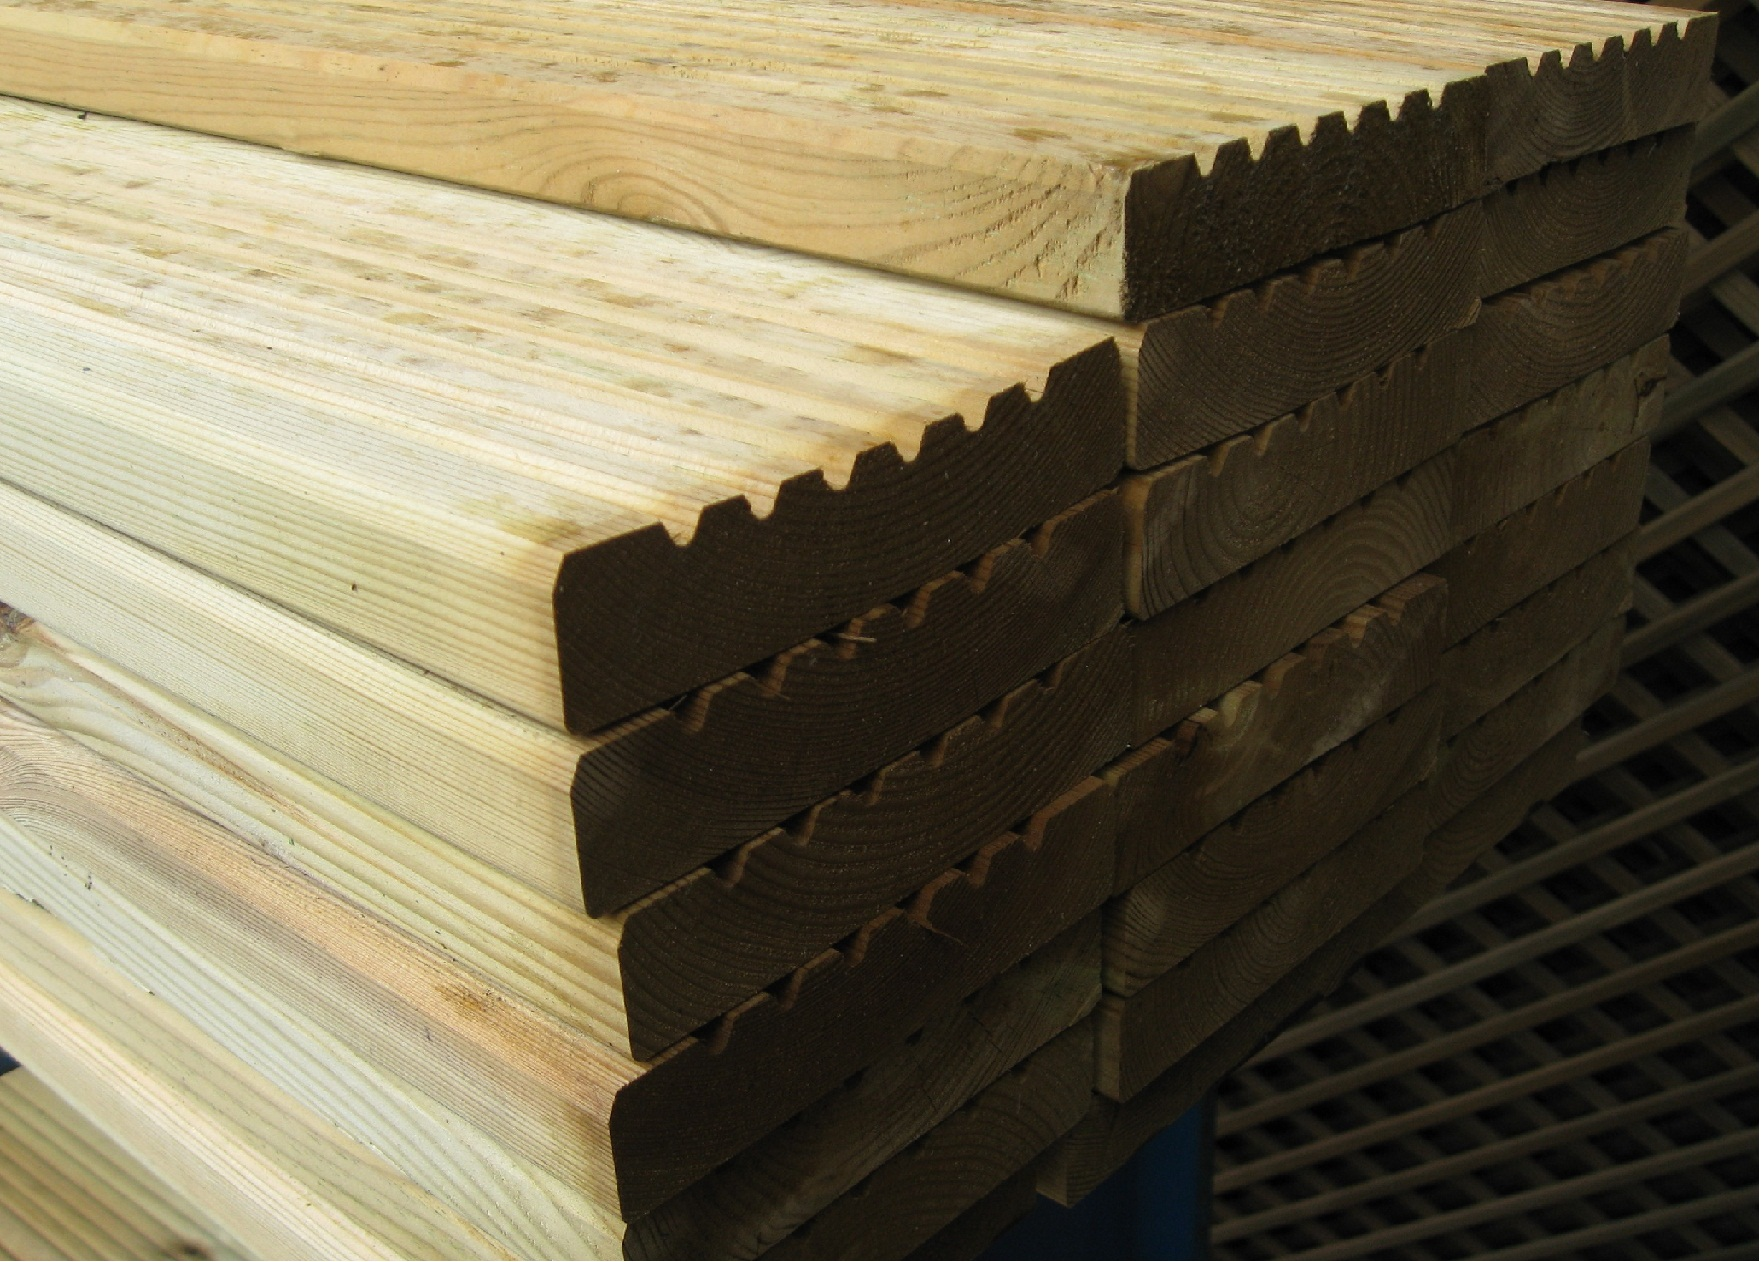 125mm x 32mm tanalised deck boards decking for 6 inch wide decking boards